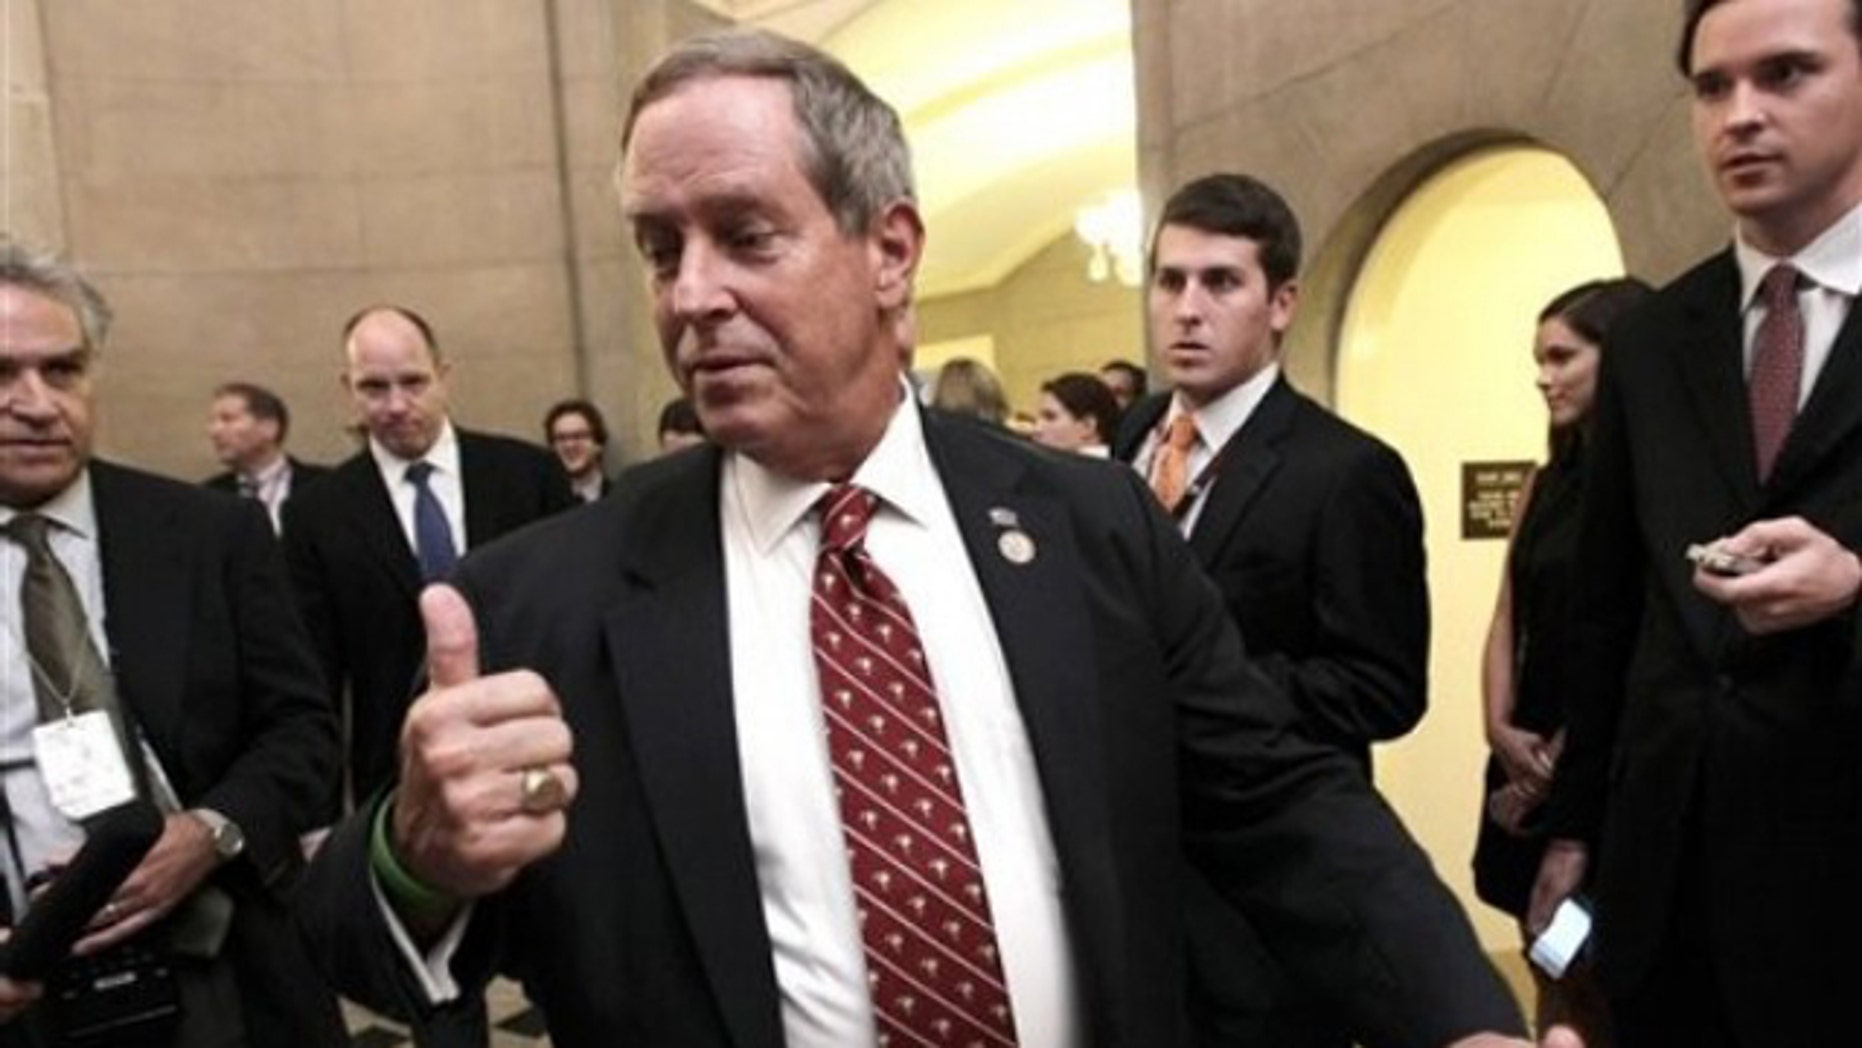 Rep. Joe Wilson arrives at the Capitol office of House Speaker John Boehner in Washington July 28.